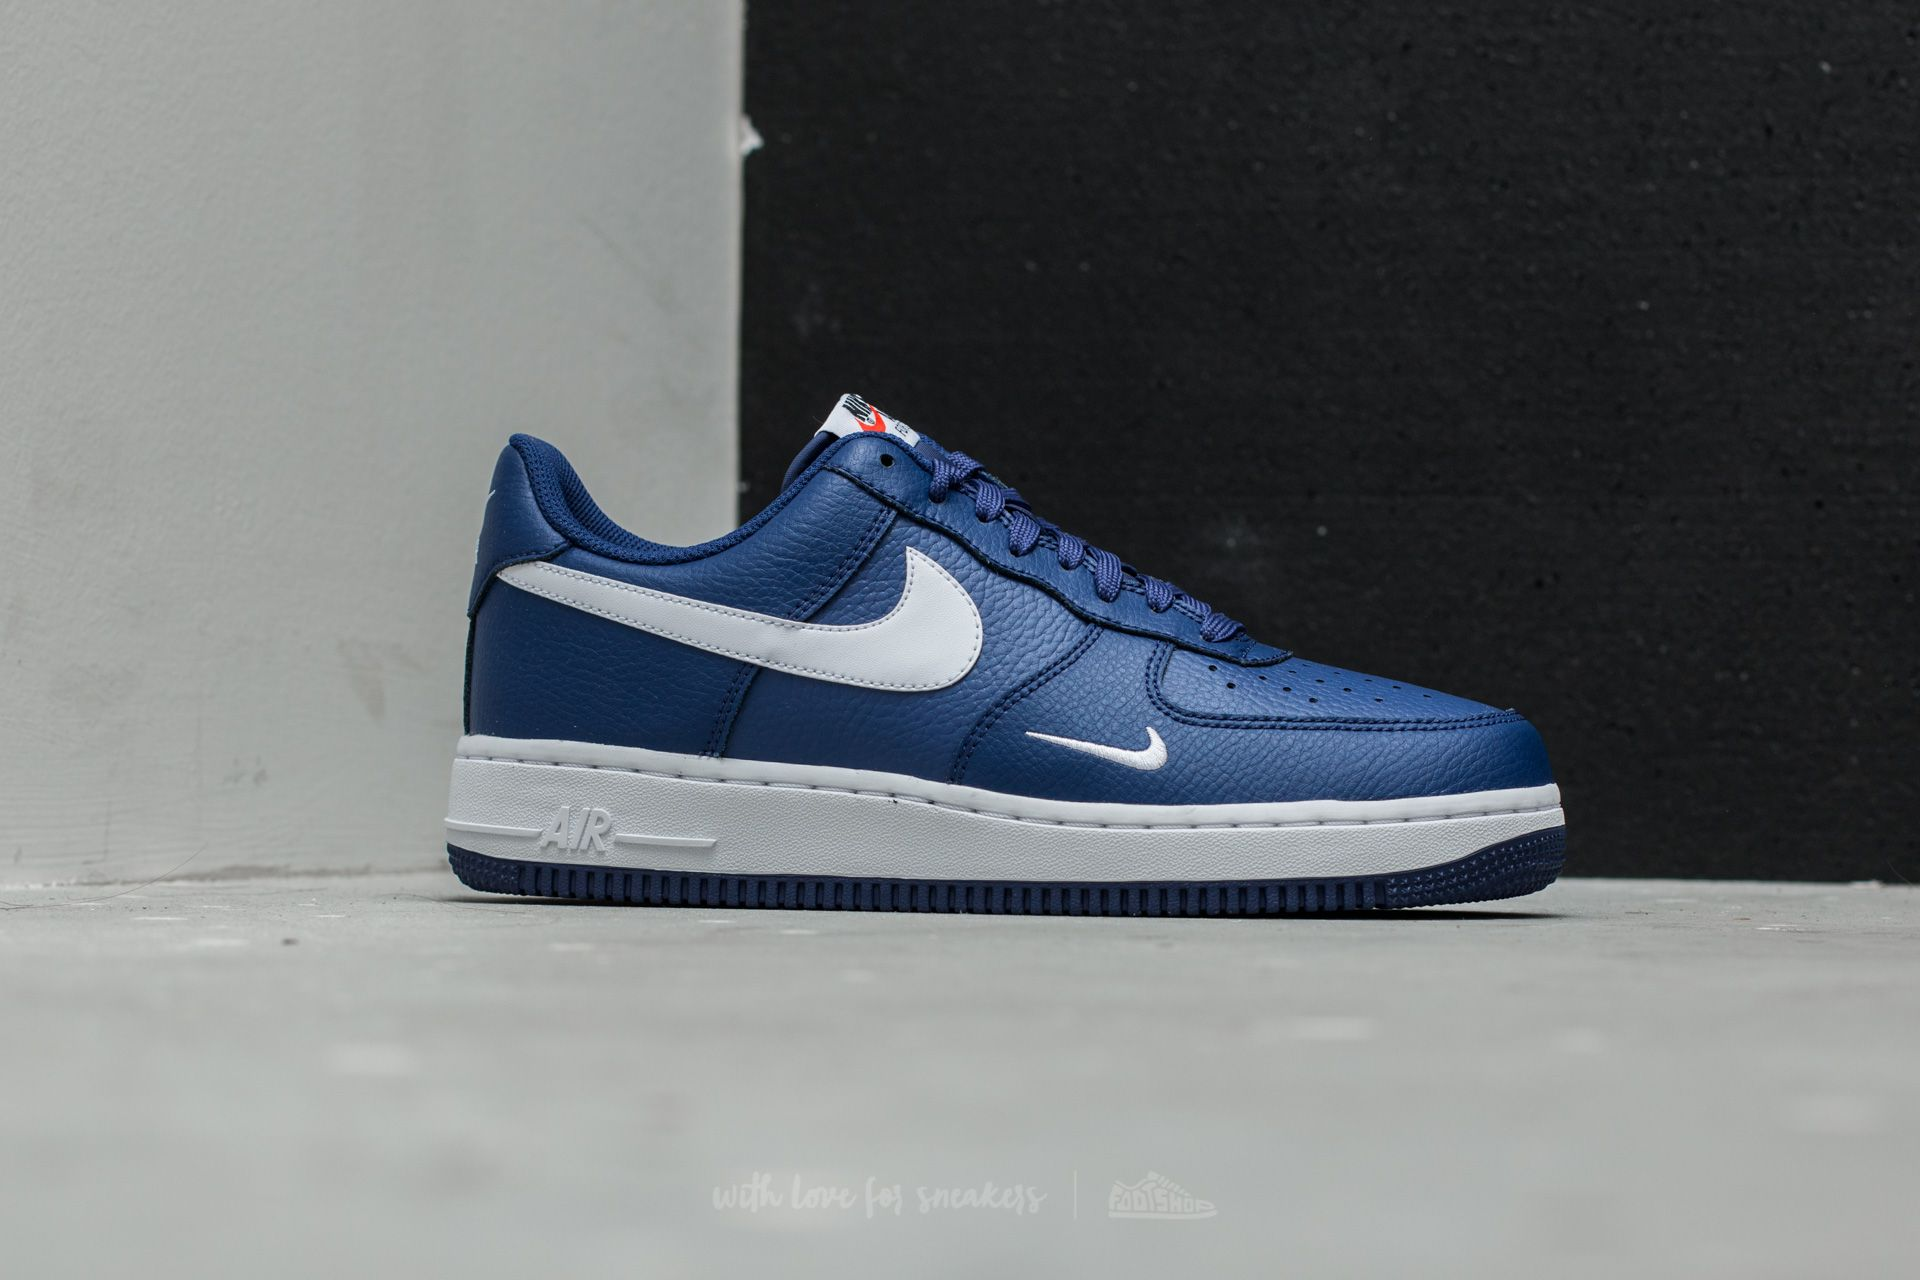 Deep Air 1 Royal Nike Force WhiteFootshop Blue hCsxotQBdr